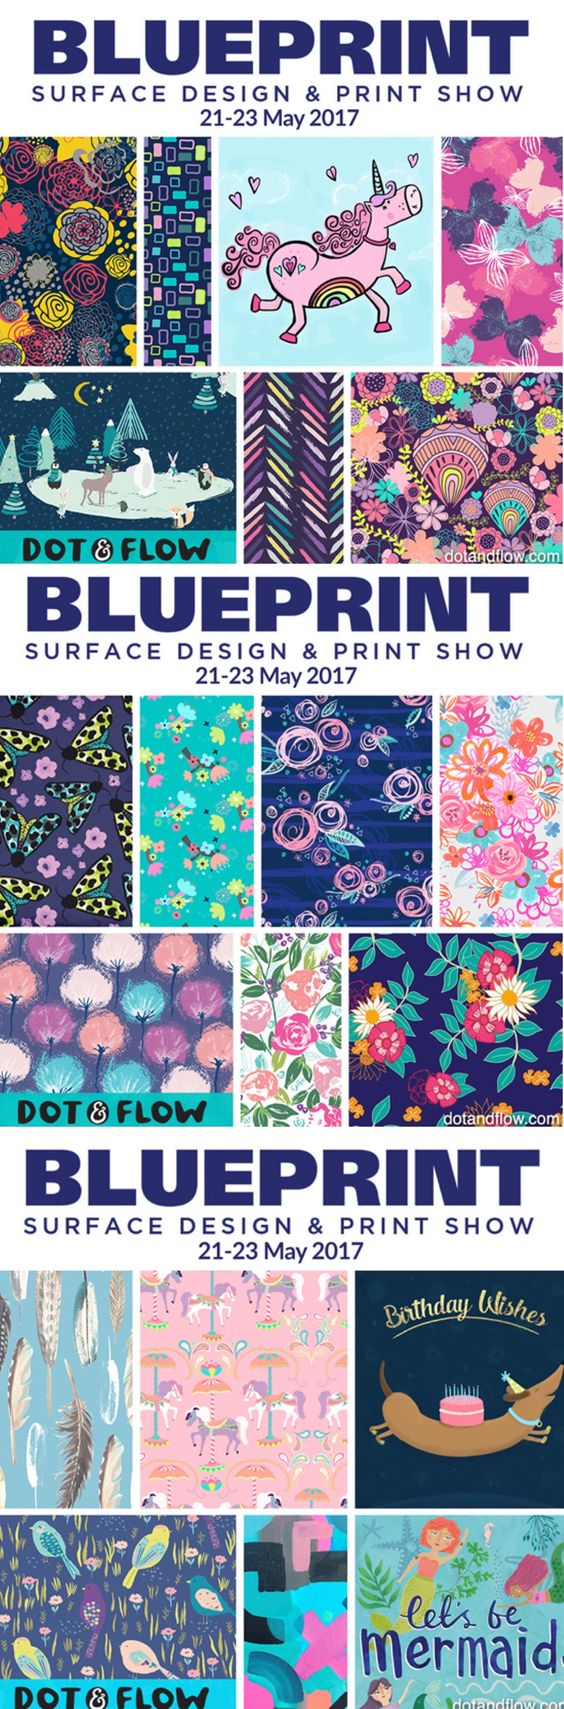 Dot and flow will be exhibiting at blueprint surface pattern and dot and flow will be exhibiting at blueprint surface pattern and print trade show in new york may 21 23rd 2017 blueprintshow surfacepatterndesign malvernweather Gallery